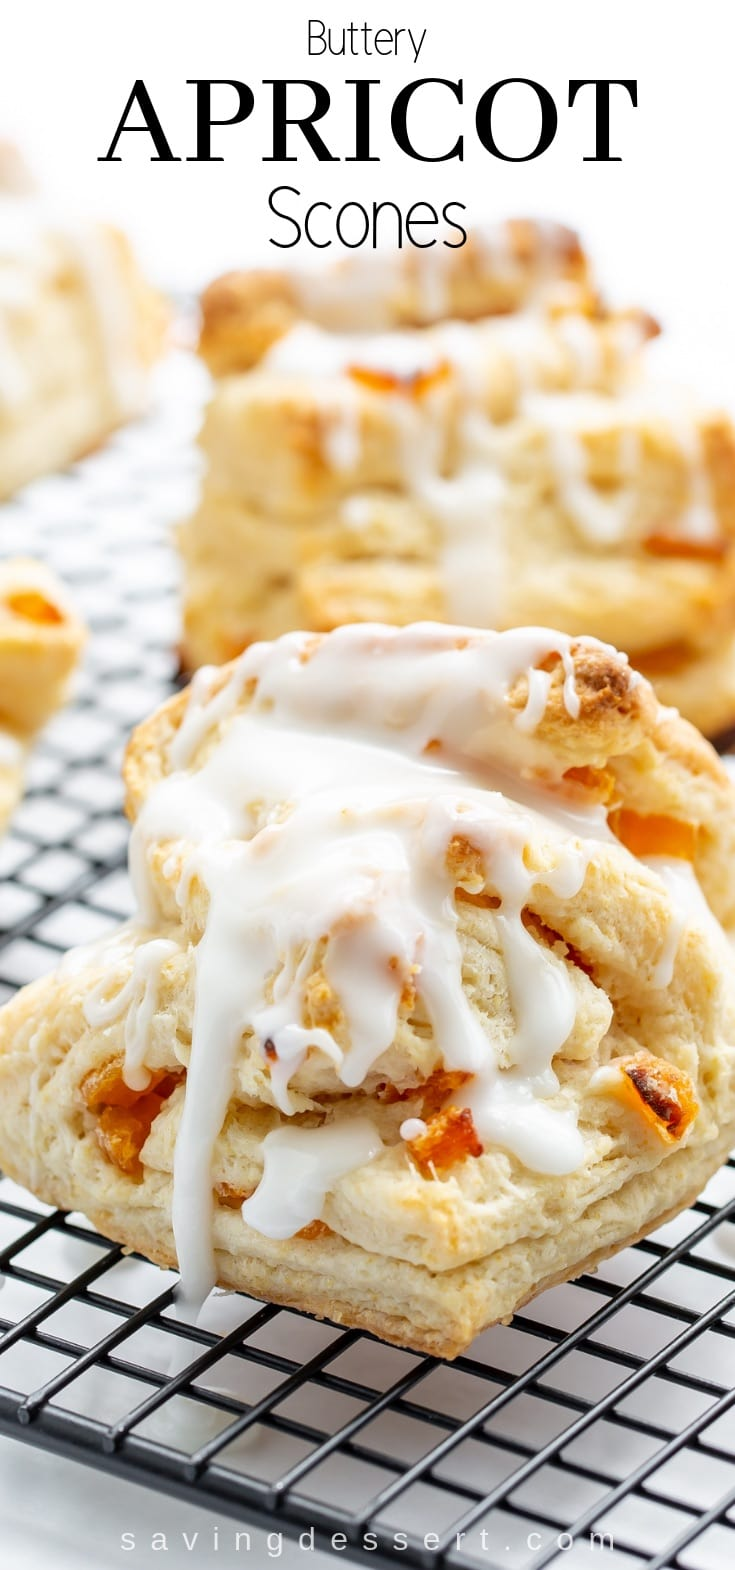 Buttery Apricot Scones ~ A light, flaky, buttery scone layered with chopped apricots and iced with an almond flavored glaze. #apricot #scones #baking #breakfast #brunch #flakyscones